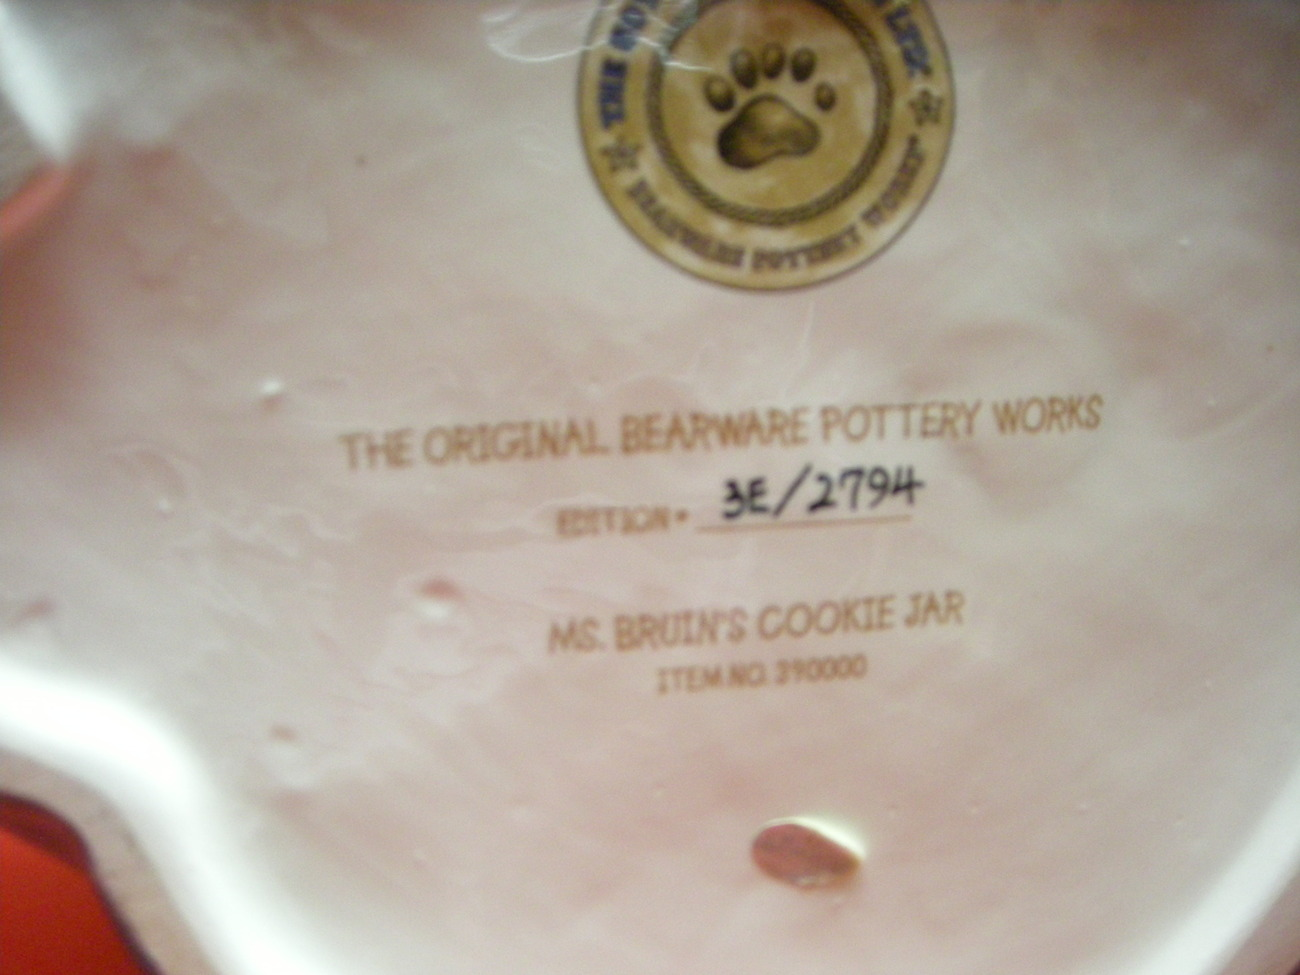 Boyds Bear Ms Bruins Cookie Jar. The Boyds collection LTD.